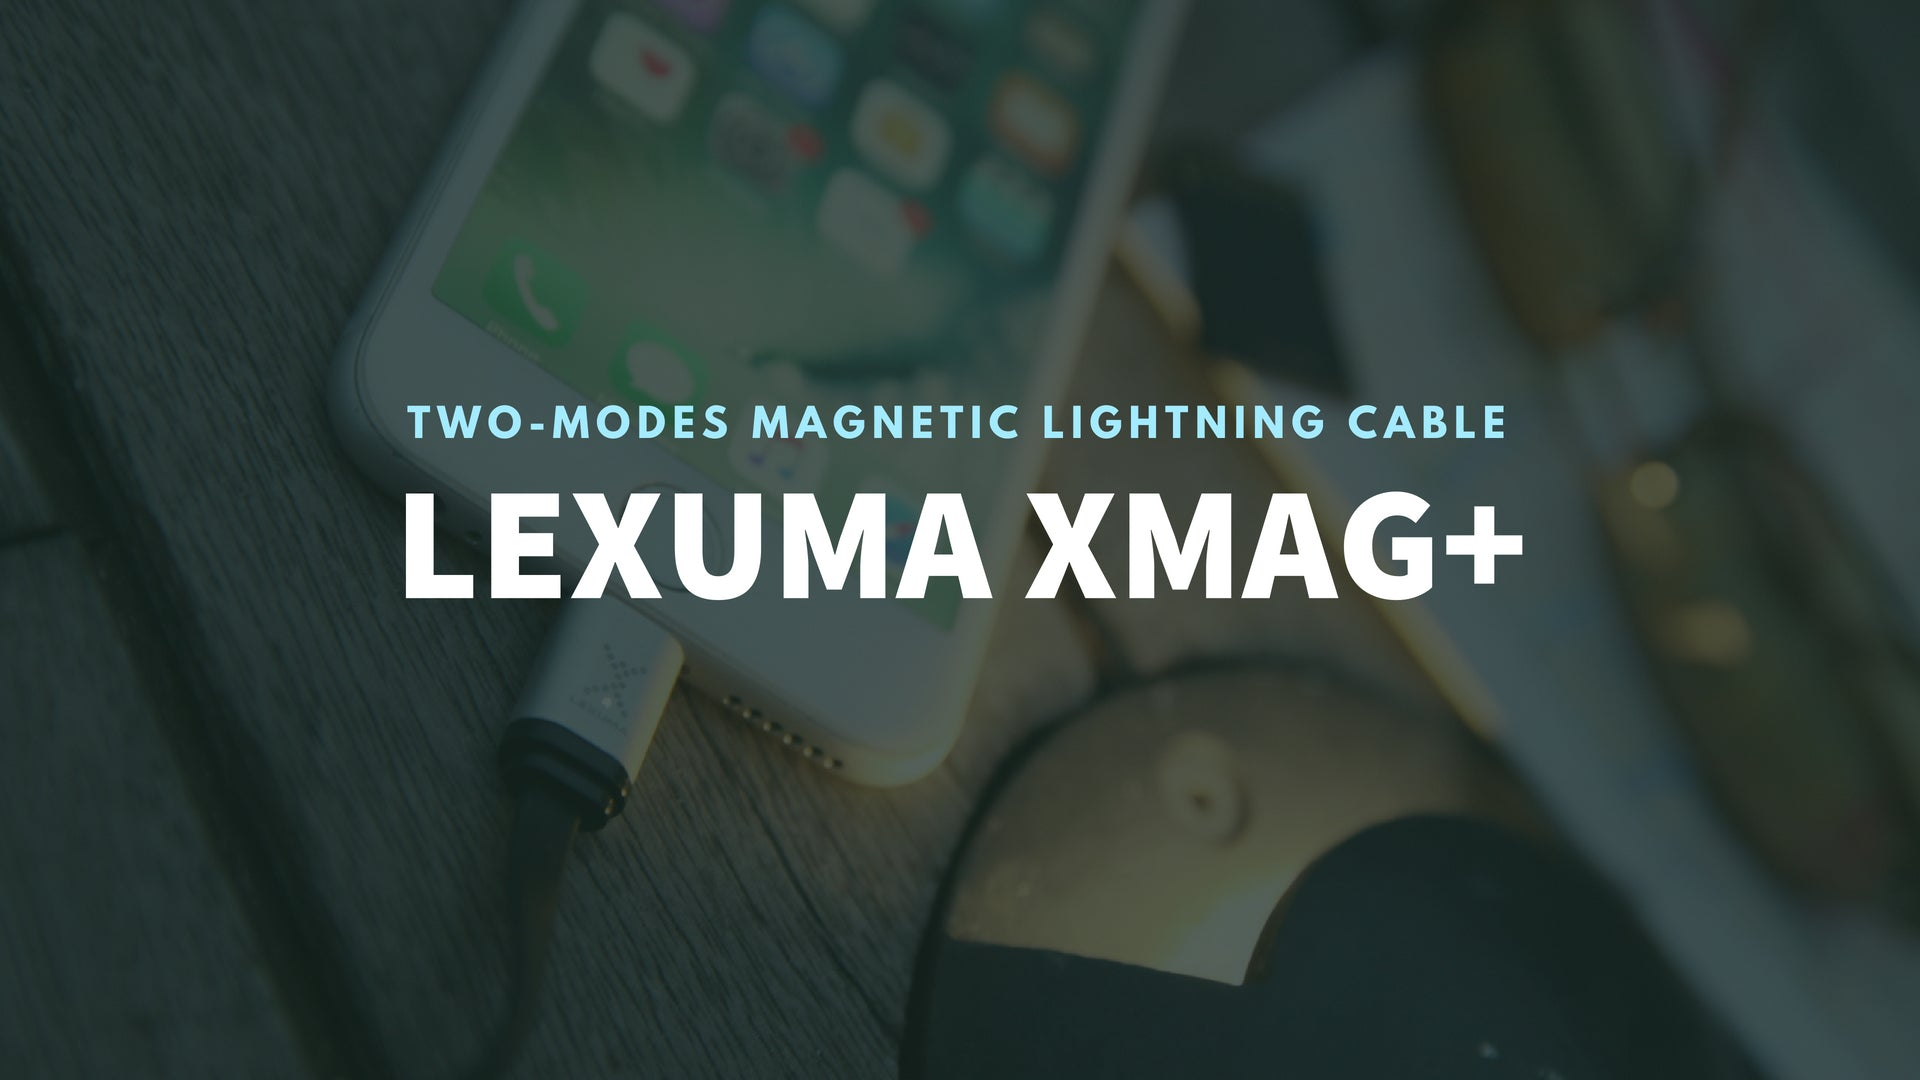 Lexuma iPhone充電線 XMag XMAG-LC-Plus Fast Charging Magnetic micro usb Lightning Cable for iPhone iOS Dual Charging Modes with adapter tip mobile accessories banner 磁吸充電線 - GadgetiCloud